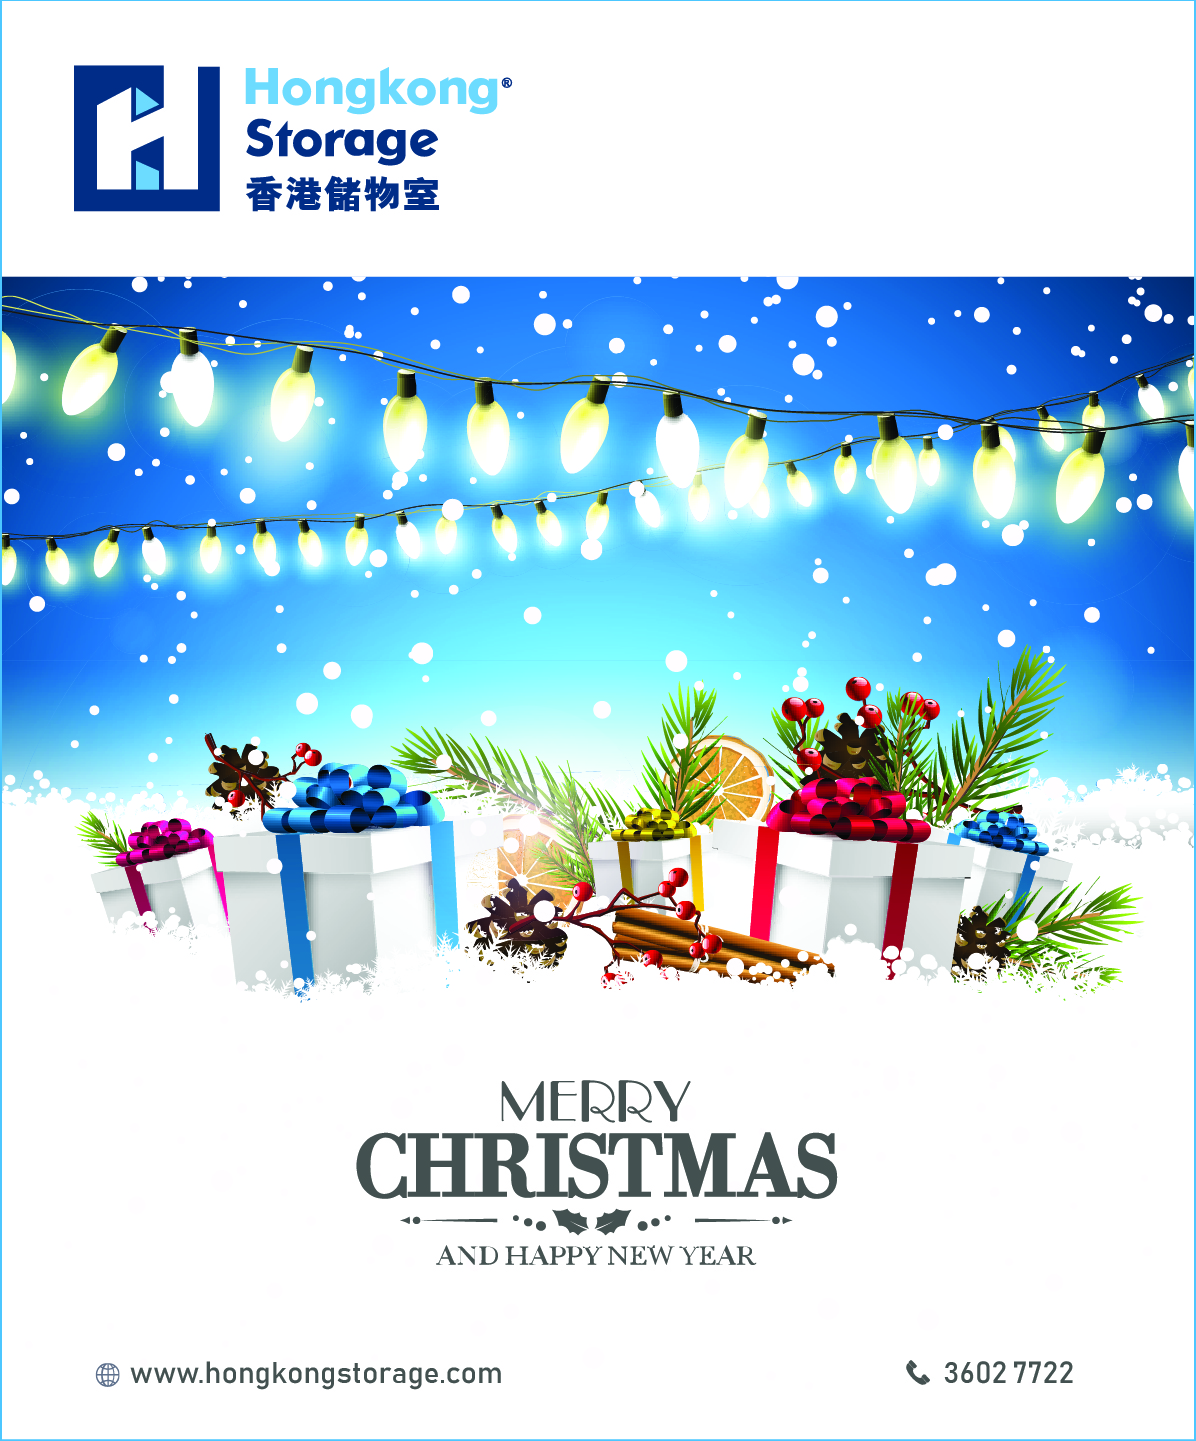 Hongkong Storage wish you Merry Christmas & Happy New Year!